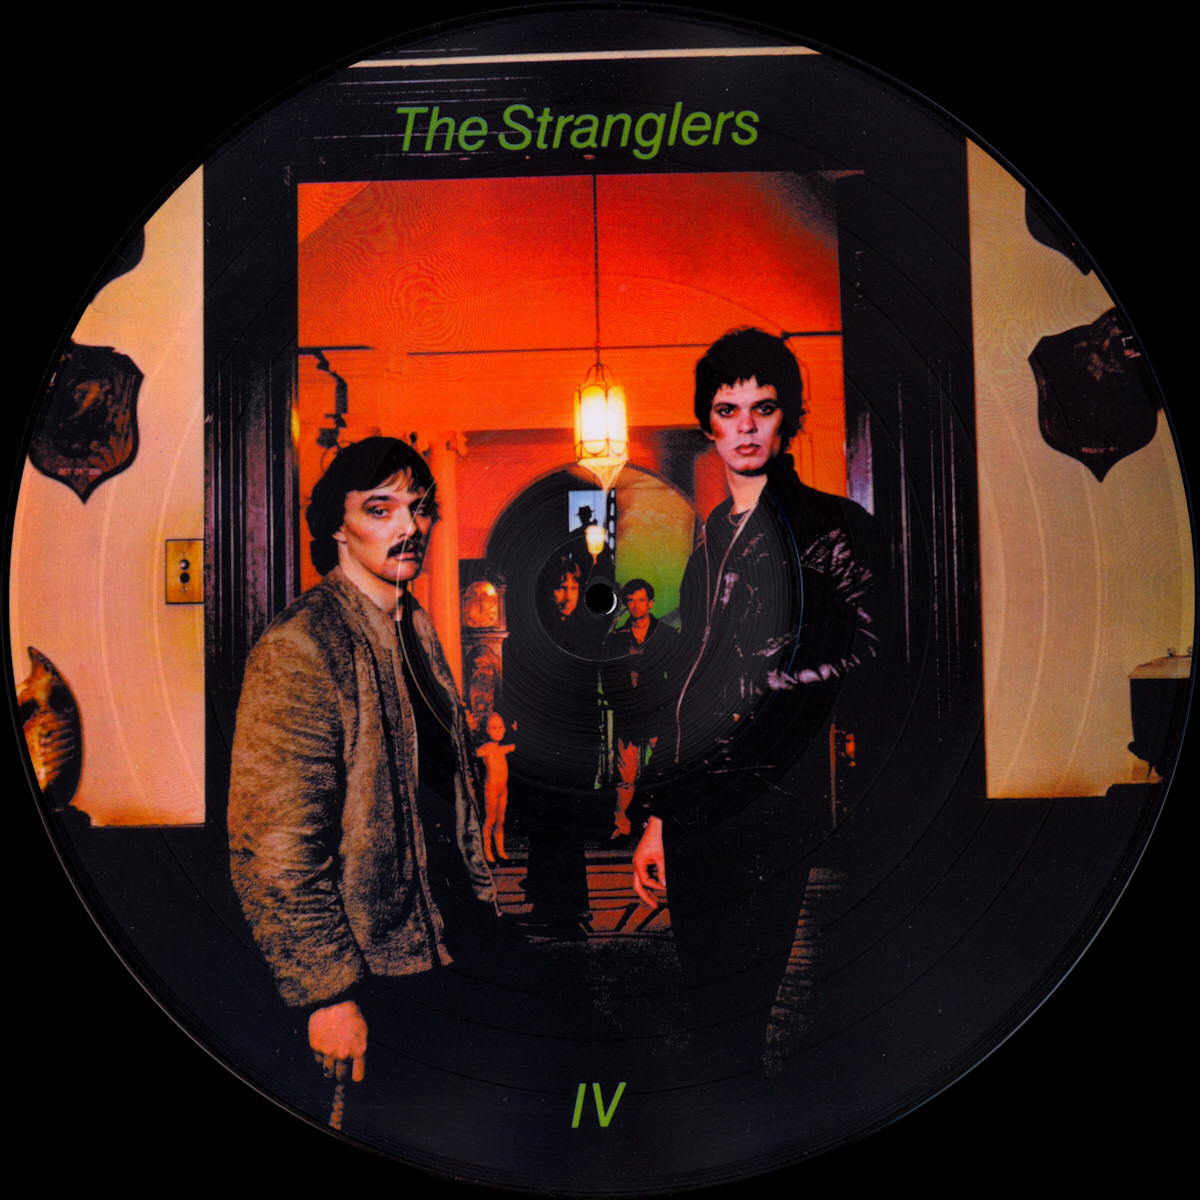 The Stranglers - All The Best The Stranglers